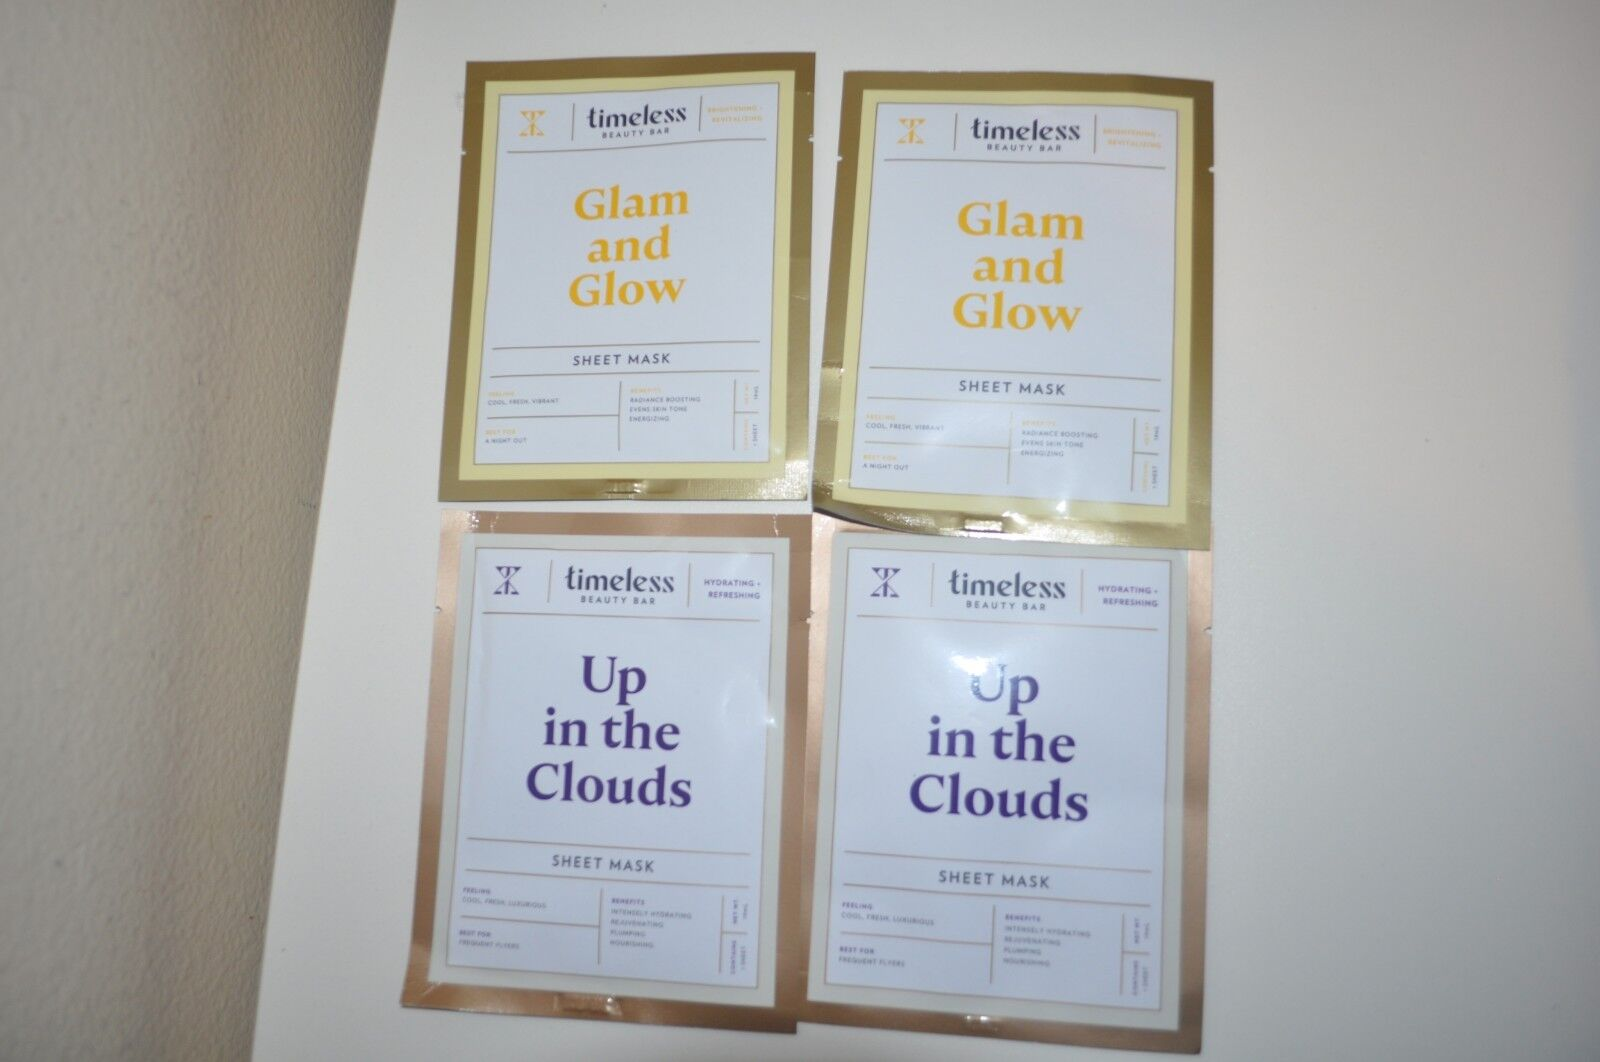 Timeless Beauty Bar Sheet Mask 4pcs Glam and glow & Up In Th